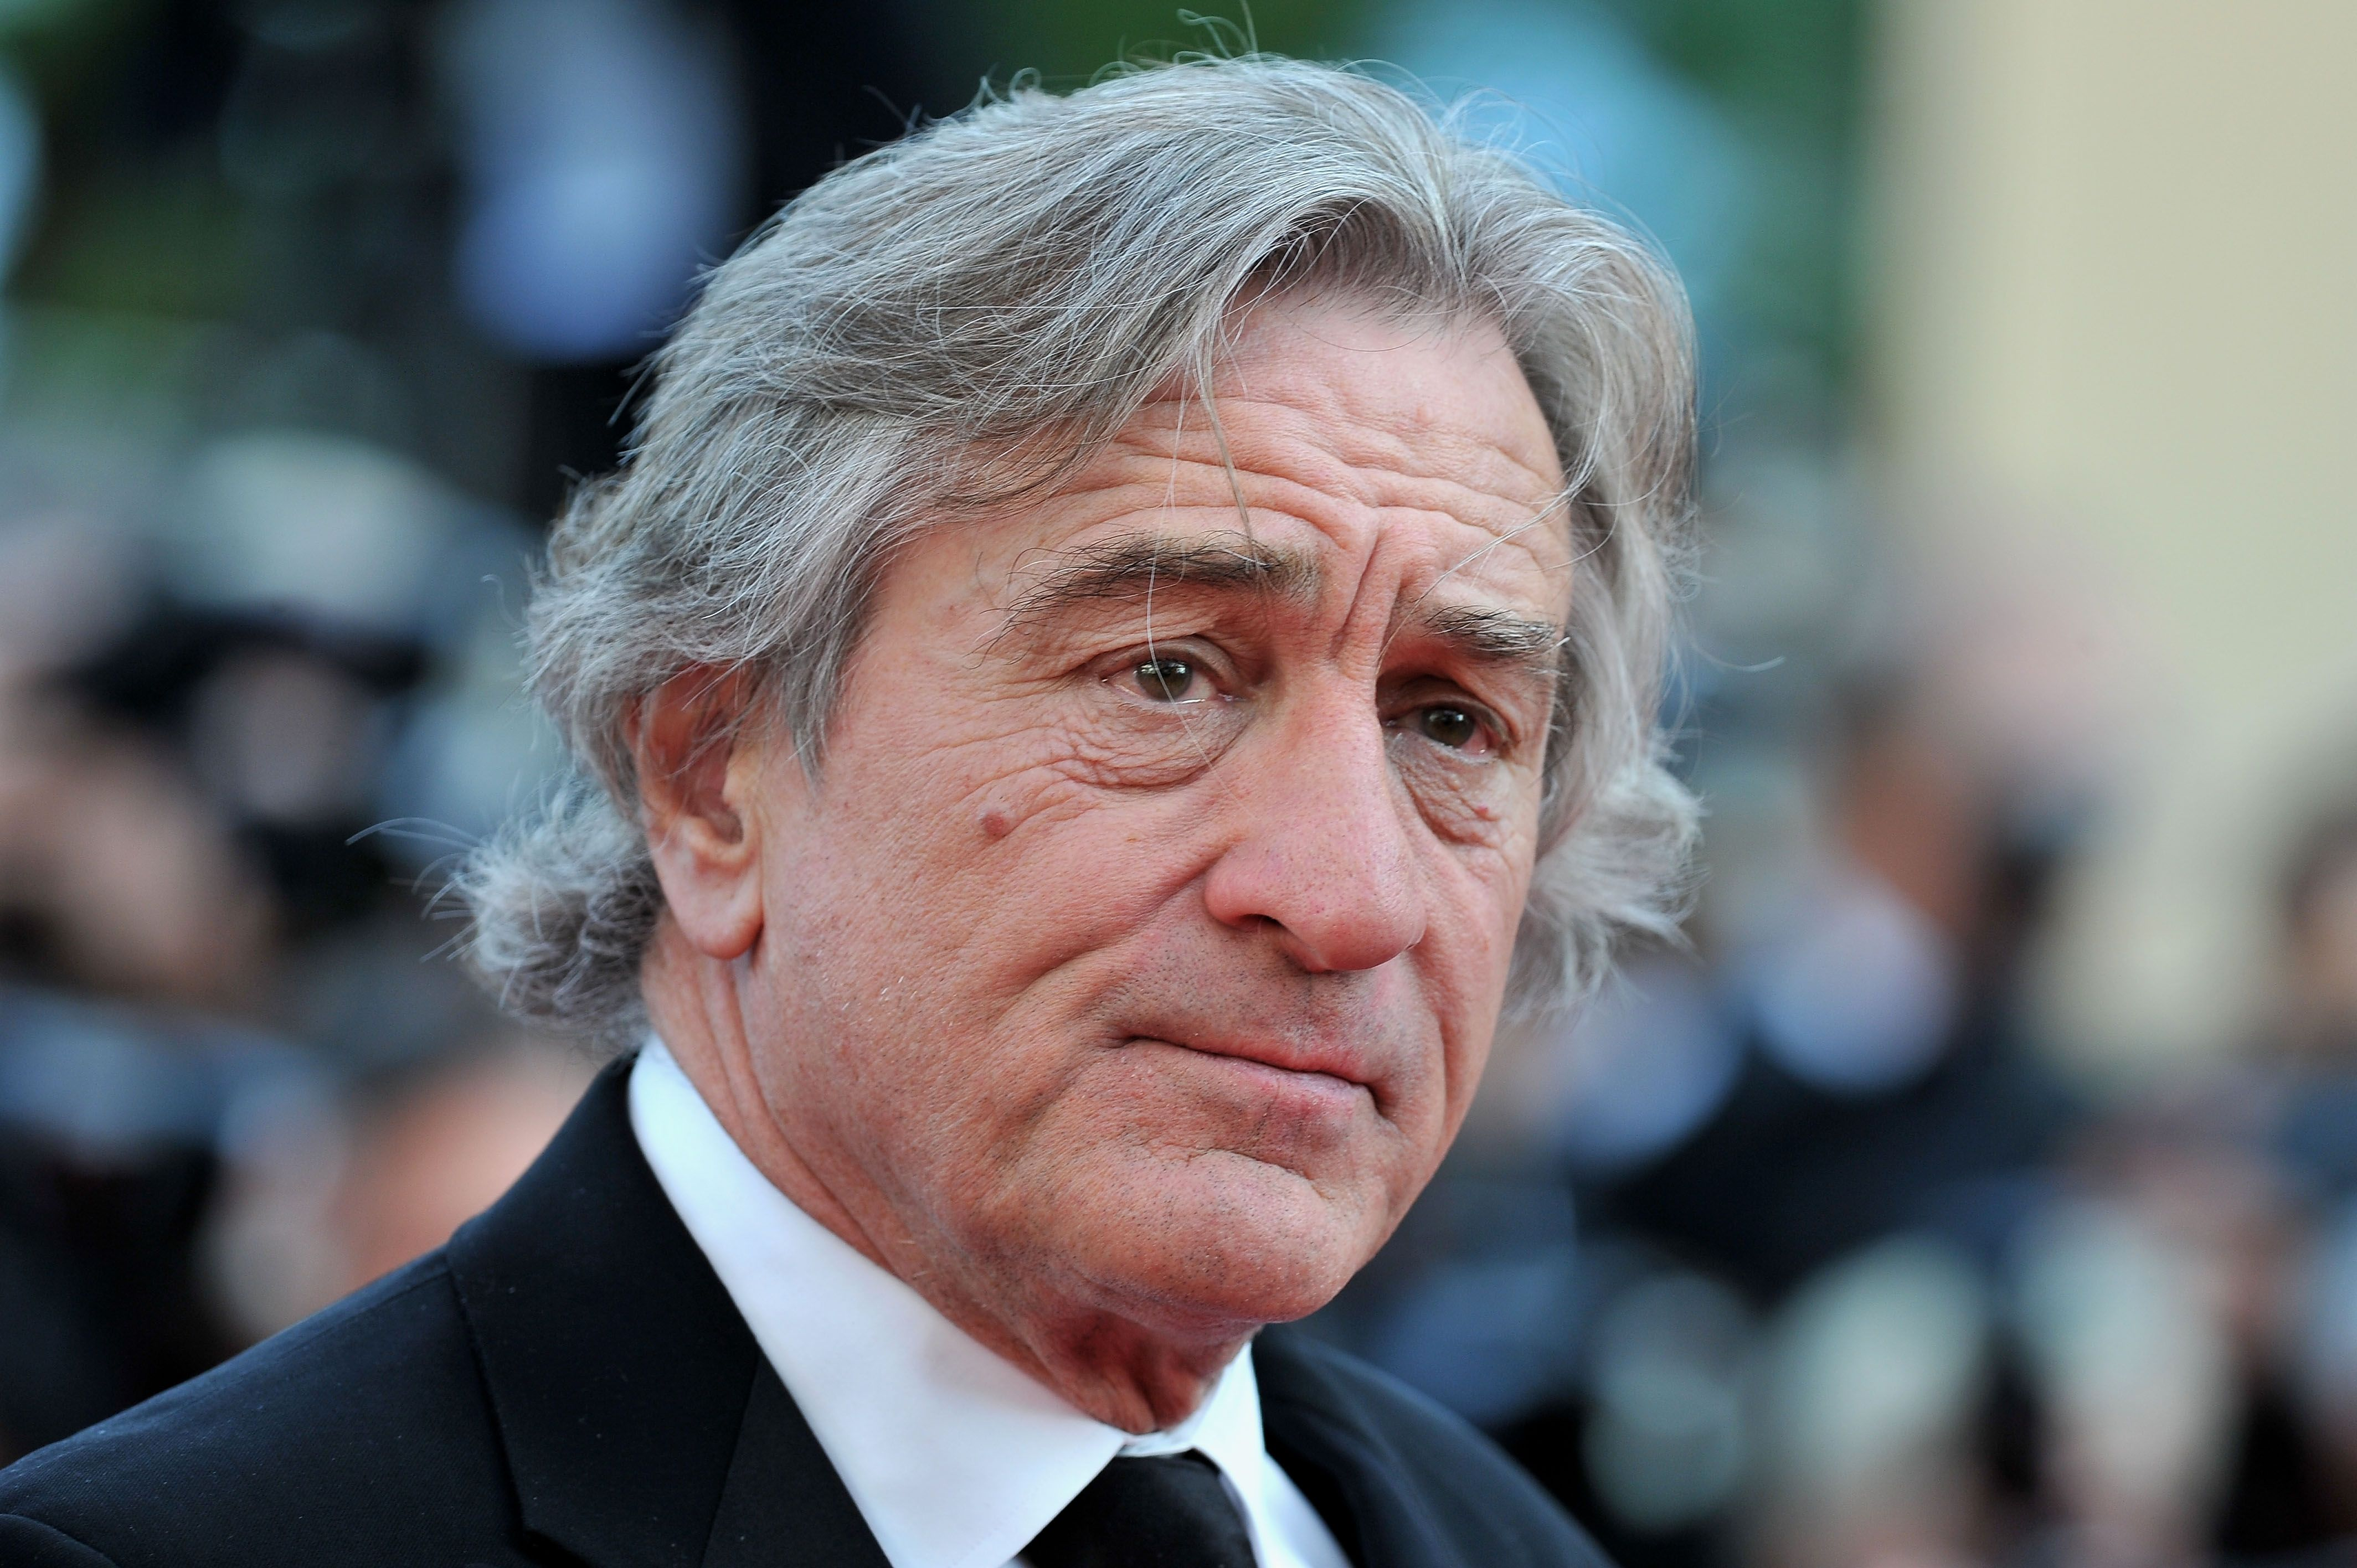 Robert De Niro attends the 'Once Upon A Time' Premiere during 65th Annual Cannes Film Festival during at Palais des Festivals on May 18, 2012 in Cannes, France. | Source: Getty Images